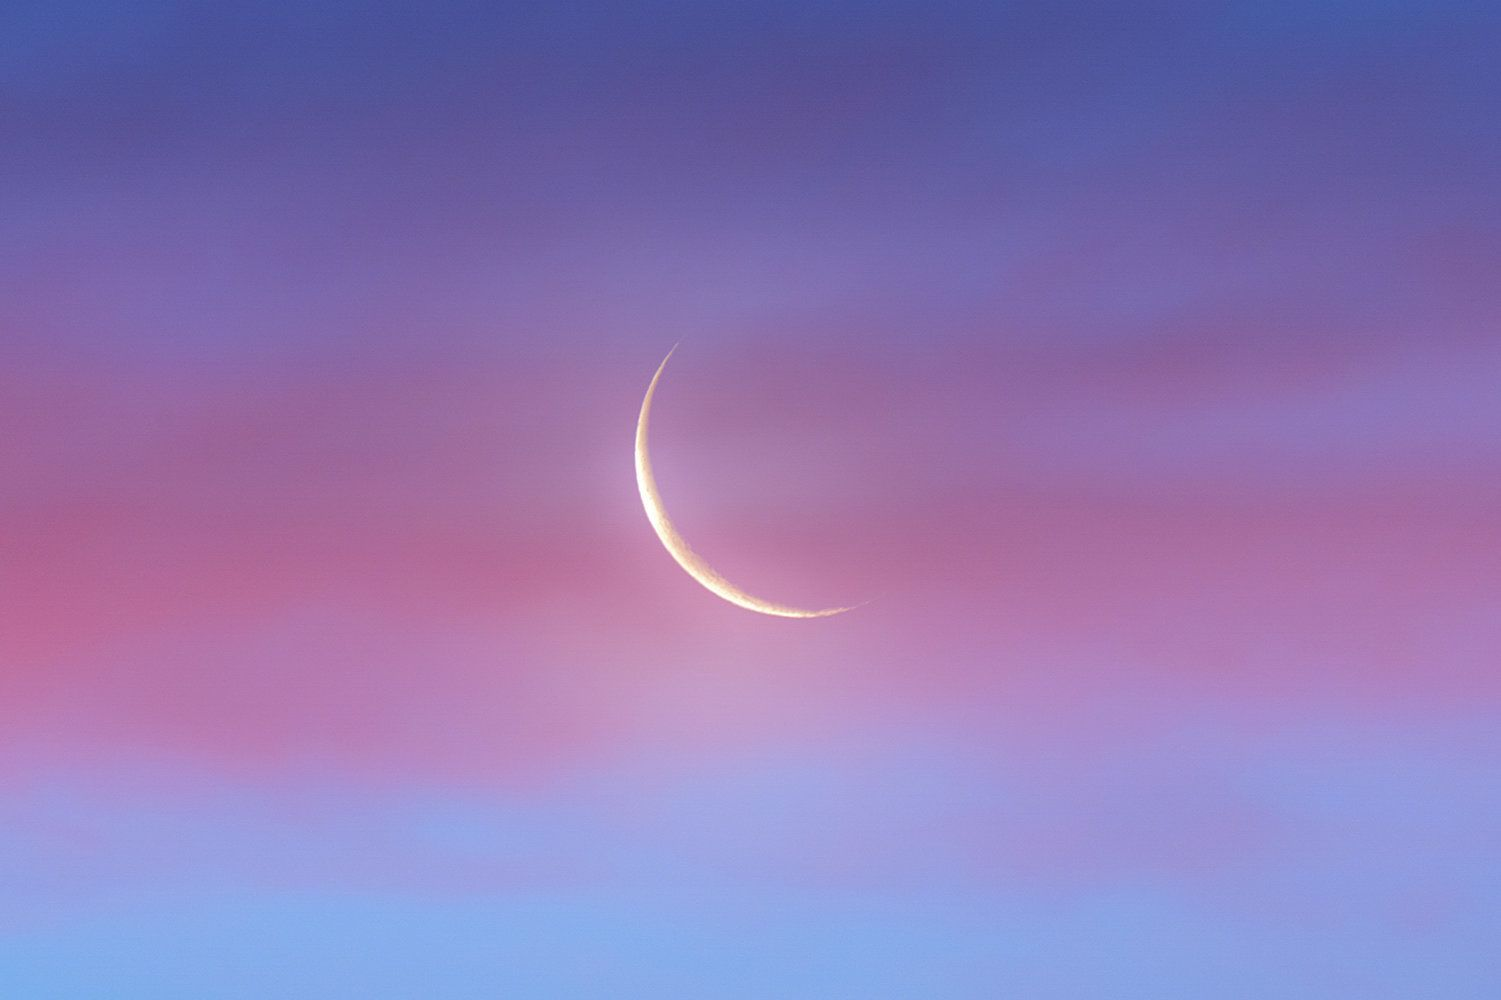 A Waning Crescent Moon Rises At Dawn Against The Glow Of Twilight And Behind A Pink Band Of Clouds Just A Few Minutes Befo Crescent Moon Moon Moon Photography